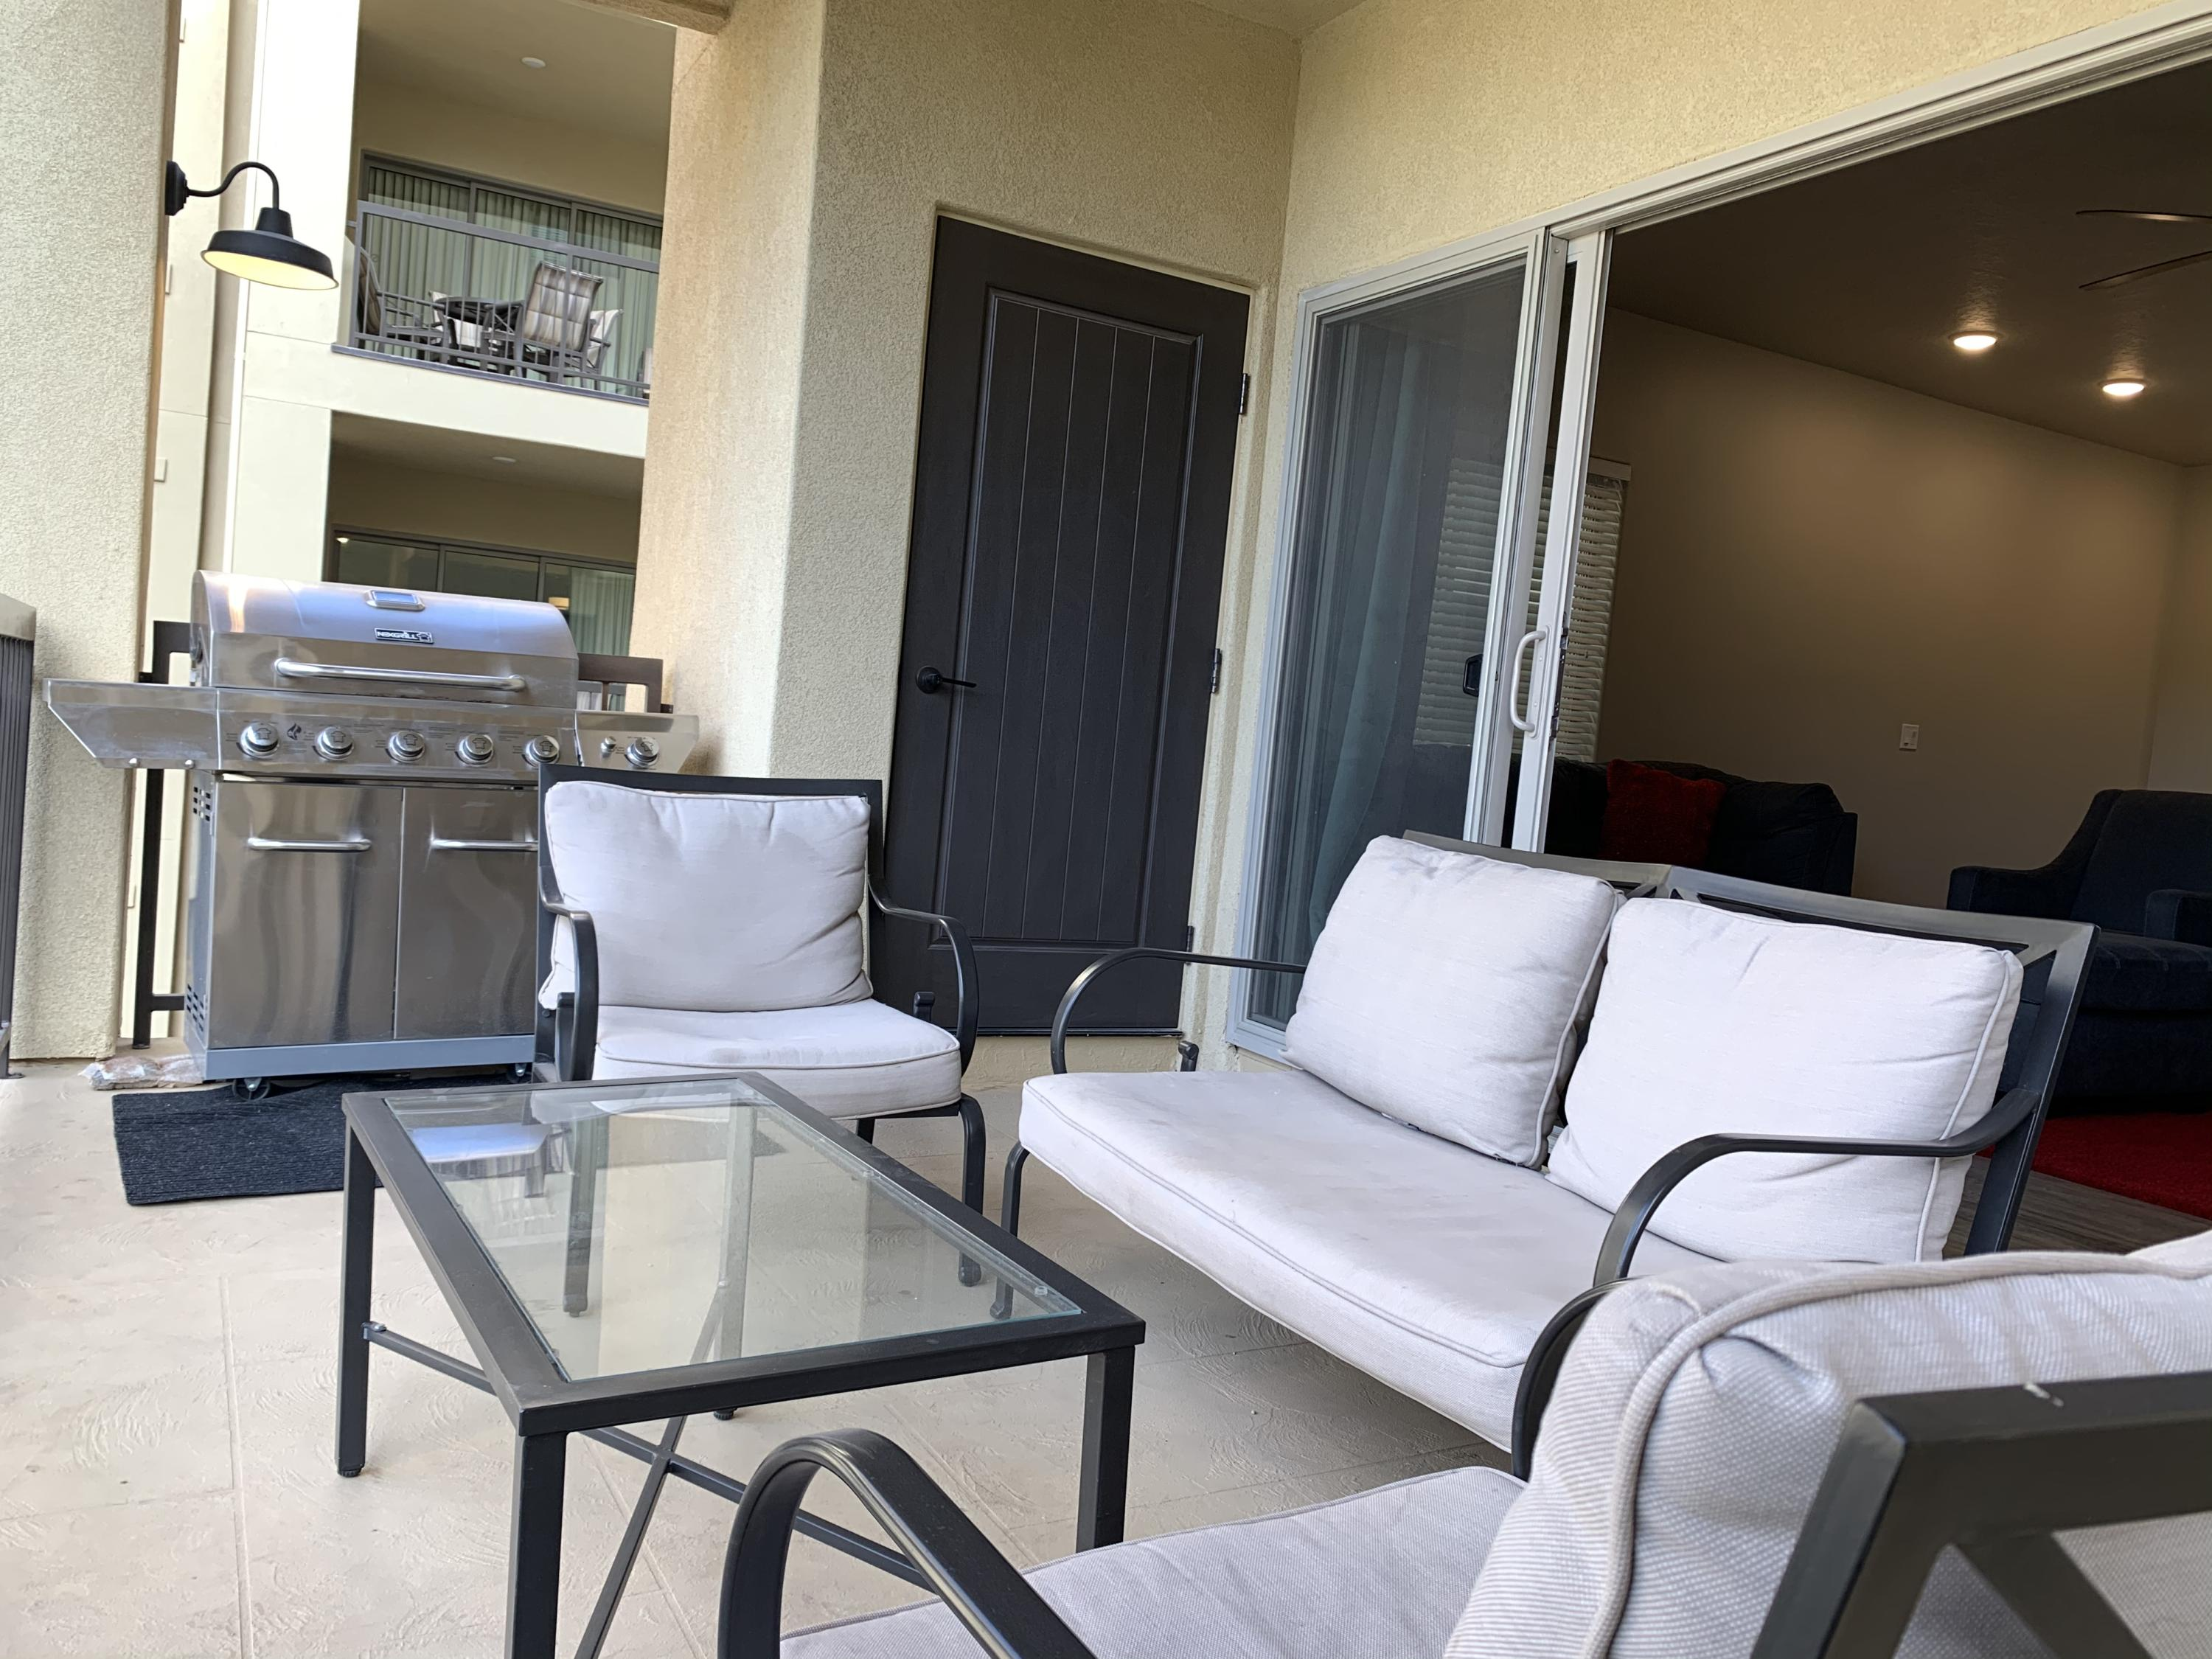 Great open floor plan, large bedrooms and bathrooms, clean and makes $ as a NIGHTLY RENTAL! Close to mountain bike trails, running/walk trails, parks, golf courses, shopping and more.